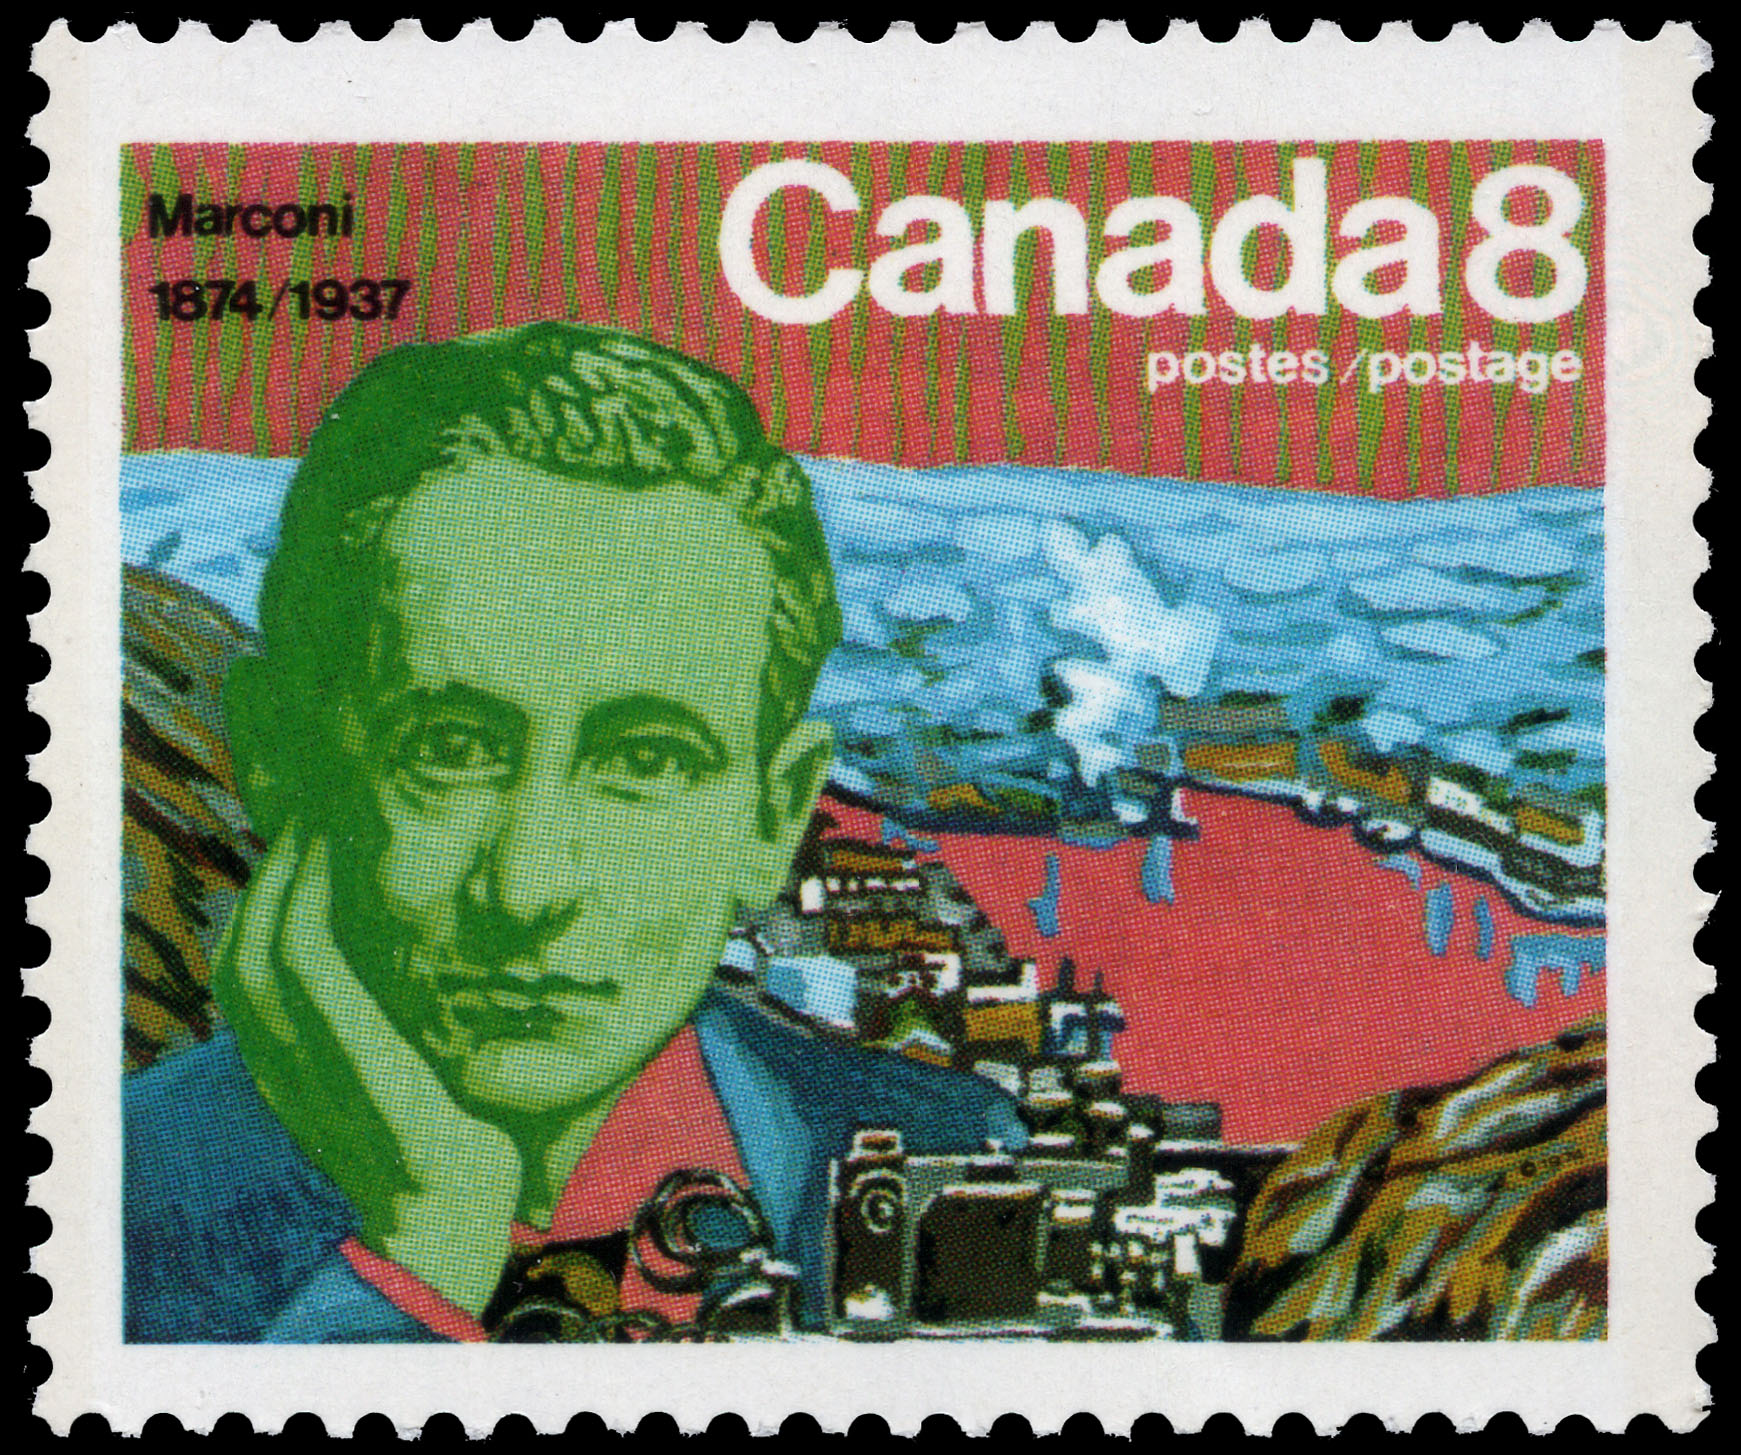 Marconi, 1874-1937 Canada Postage Stamp